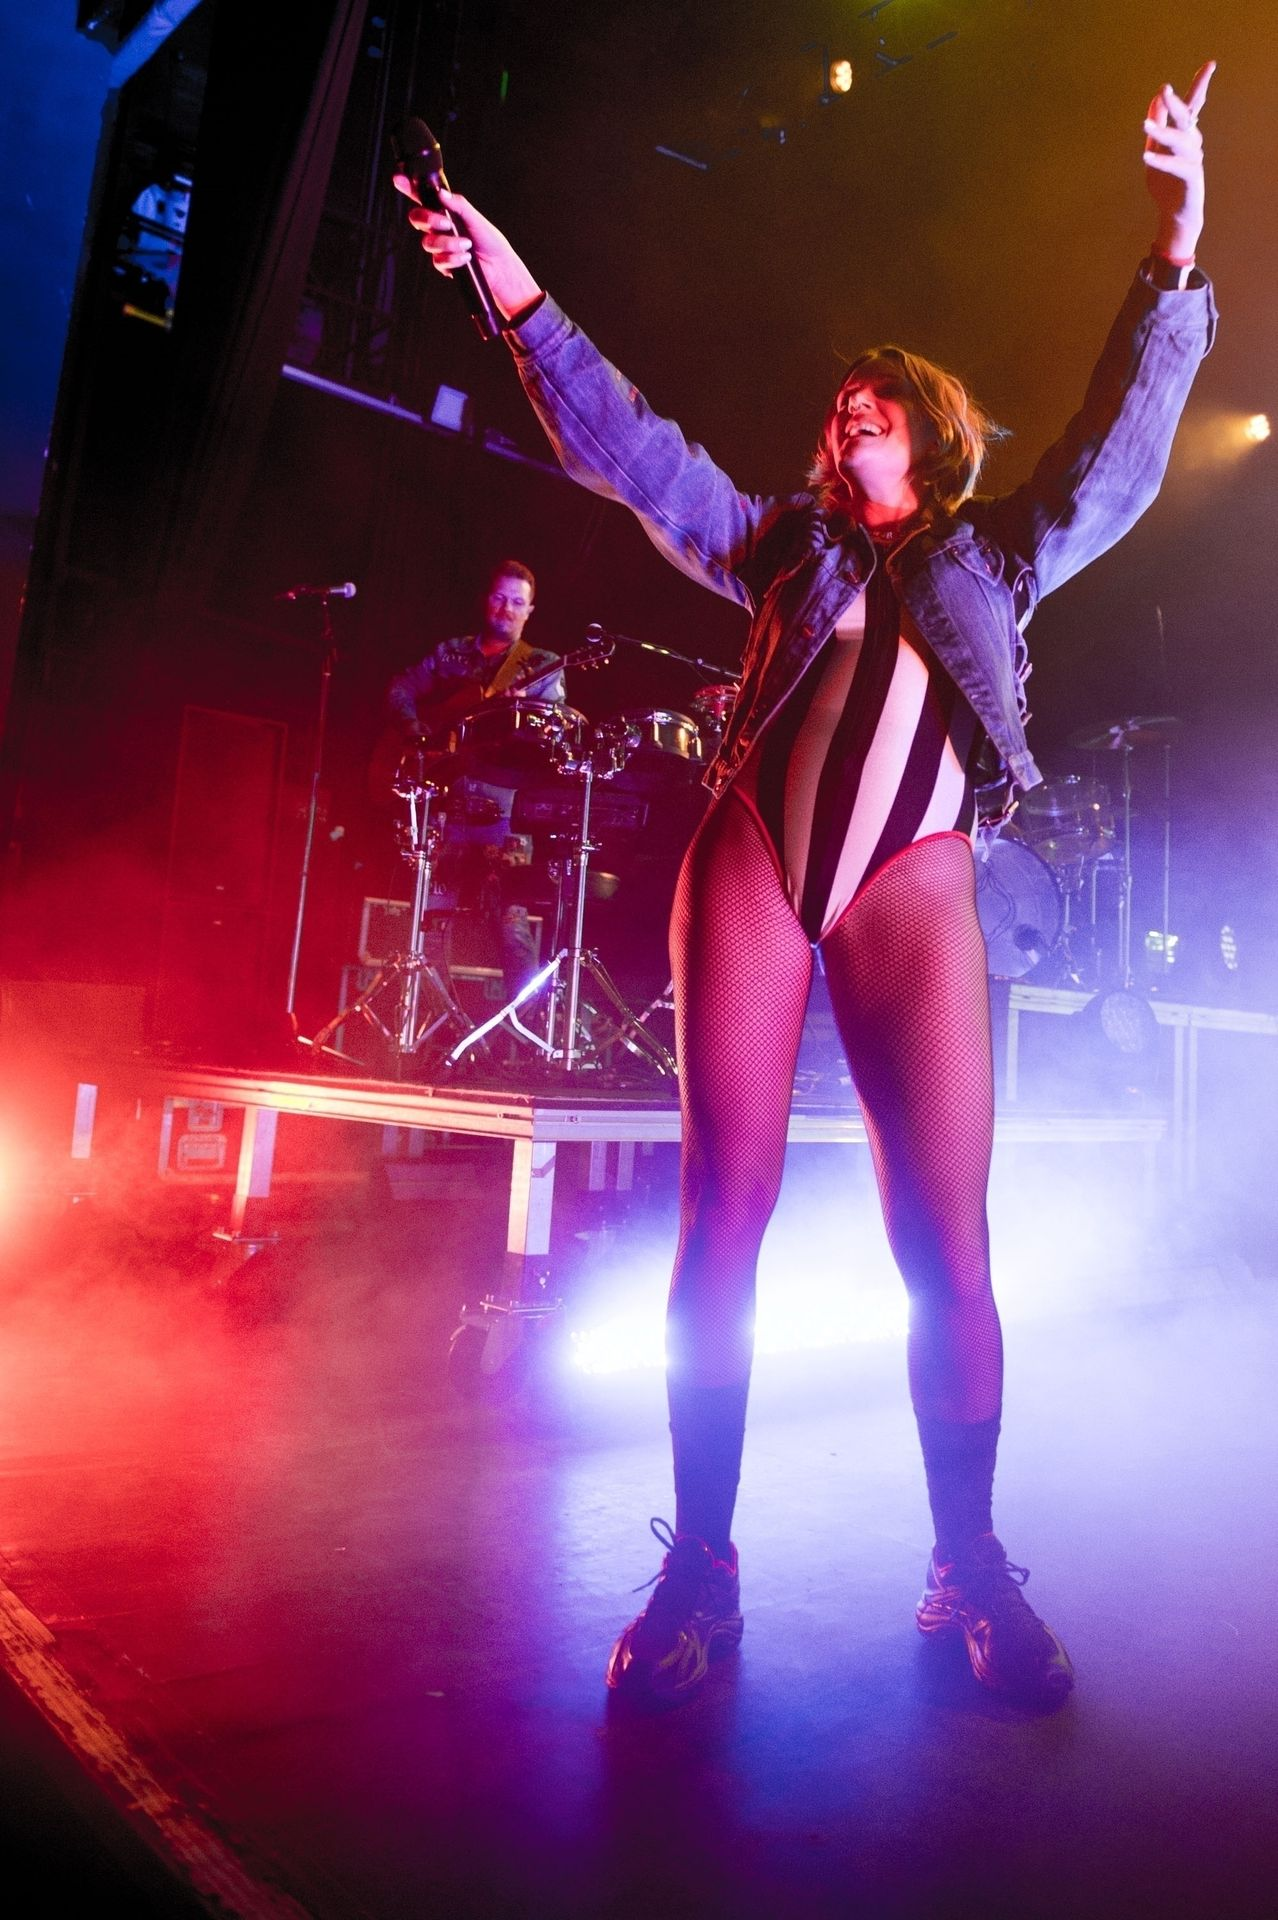 Tove Lo Is In Concert Performing Live At O2 Forum Kentish Town In London 0051